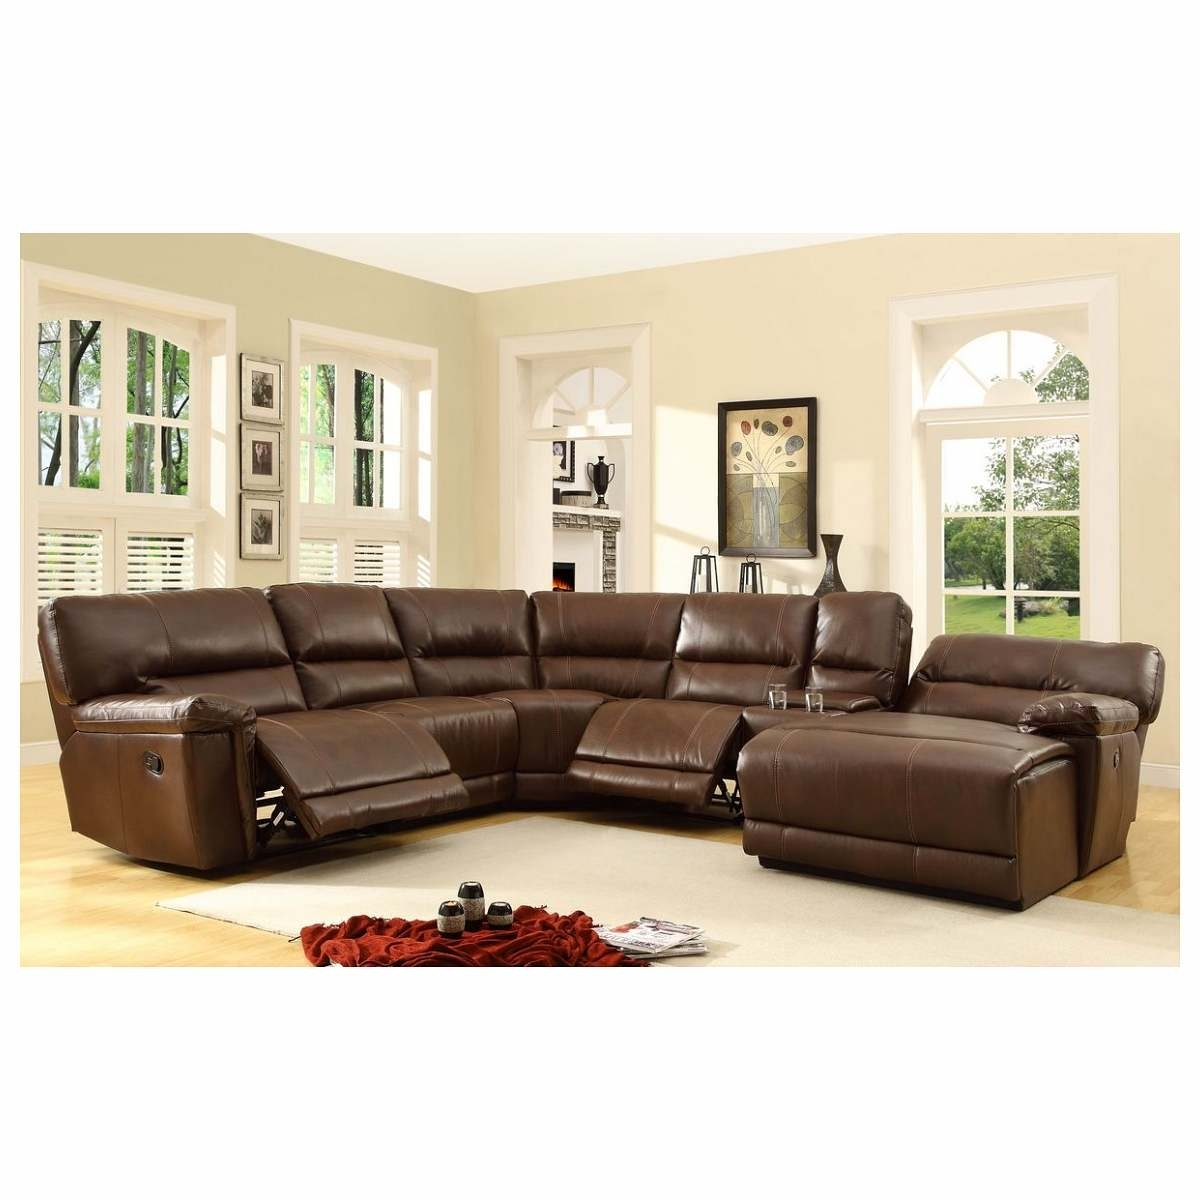 6 Pc Blythe Collection Brown Bonded Leather Match Upholstered Pertaining To 6 Piece Leather Sectional Sofas (Photo 3 of 10)